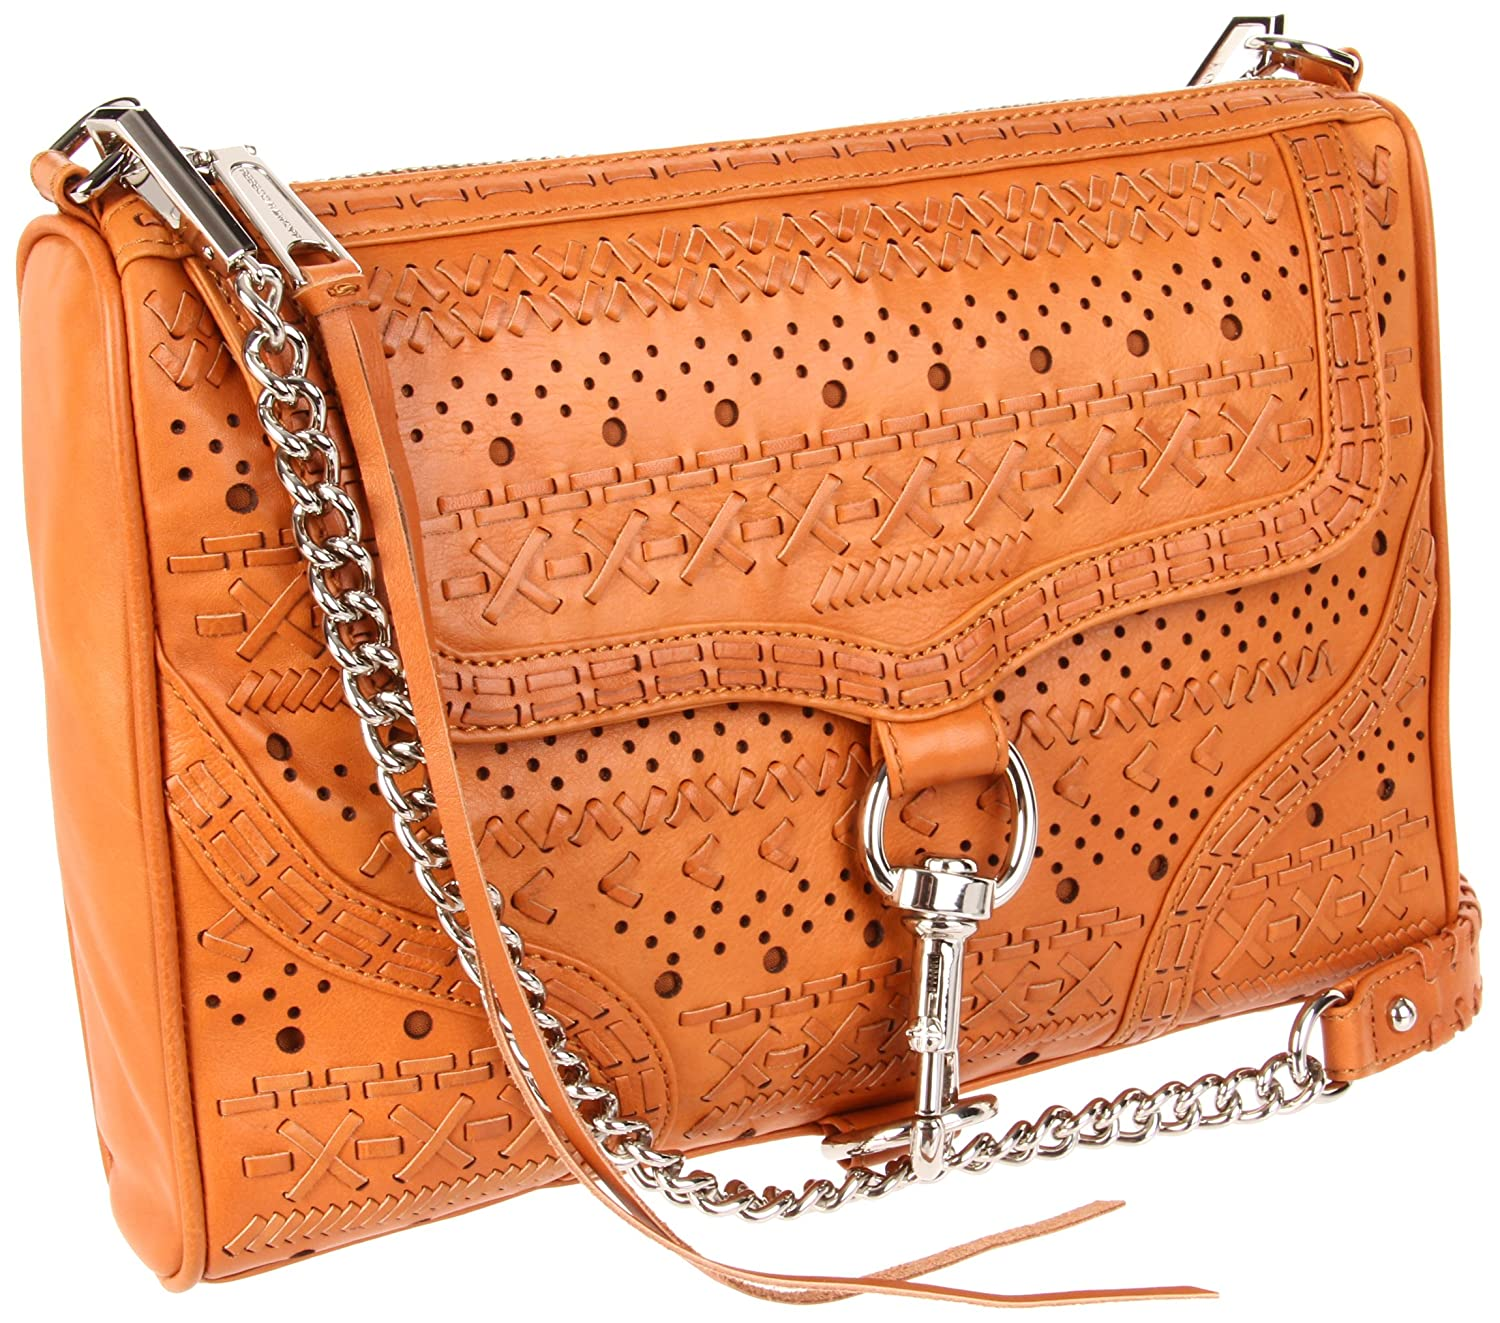 Rebecca Minkoff Mac Perf Weave Clutch,Natural,One Size $248.85